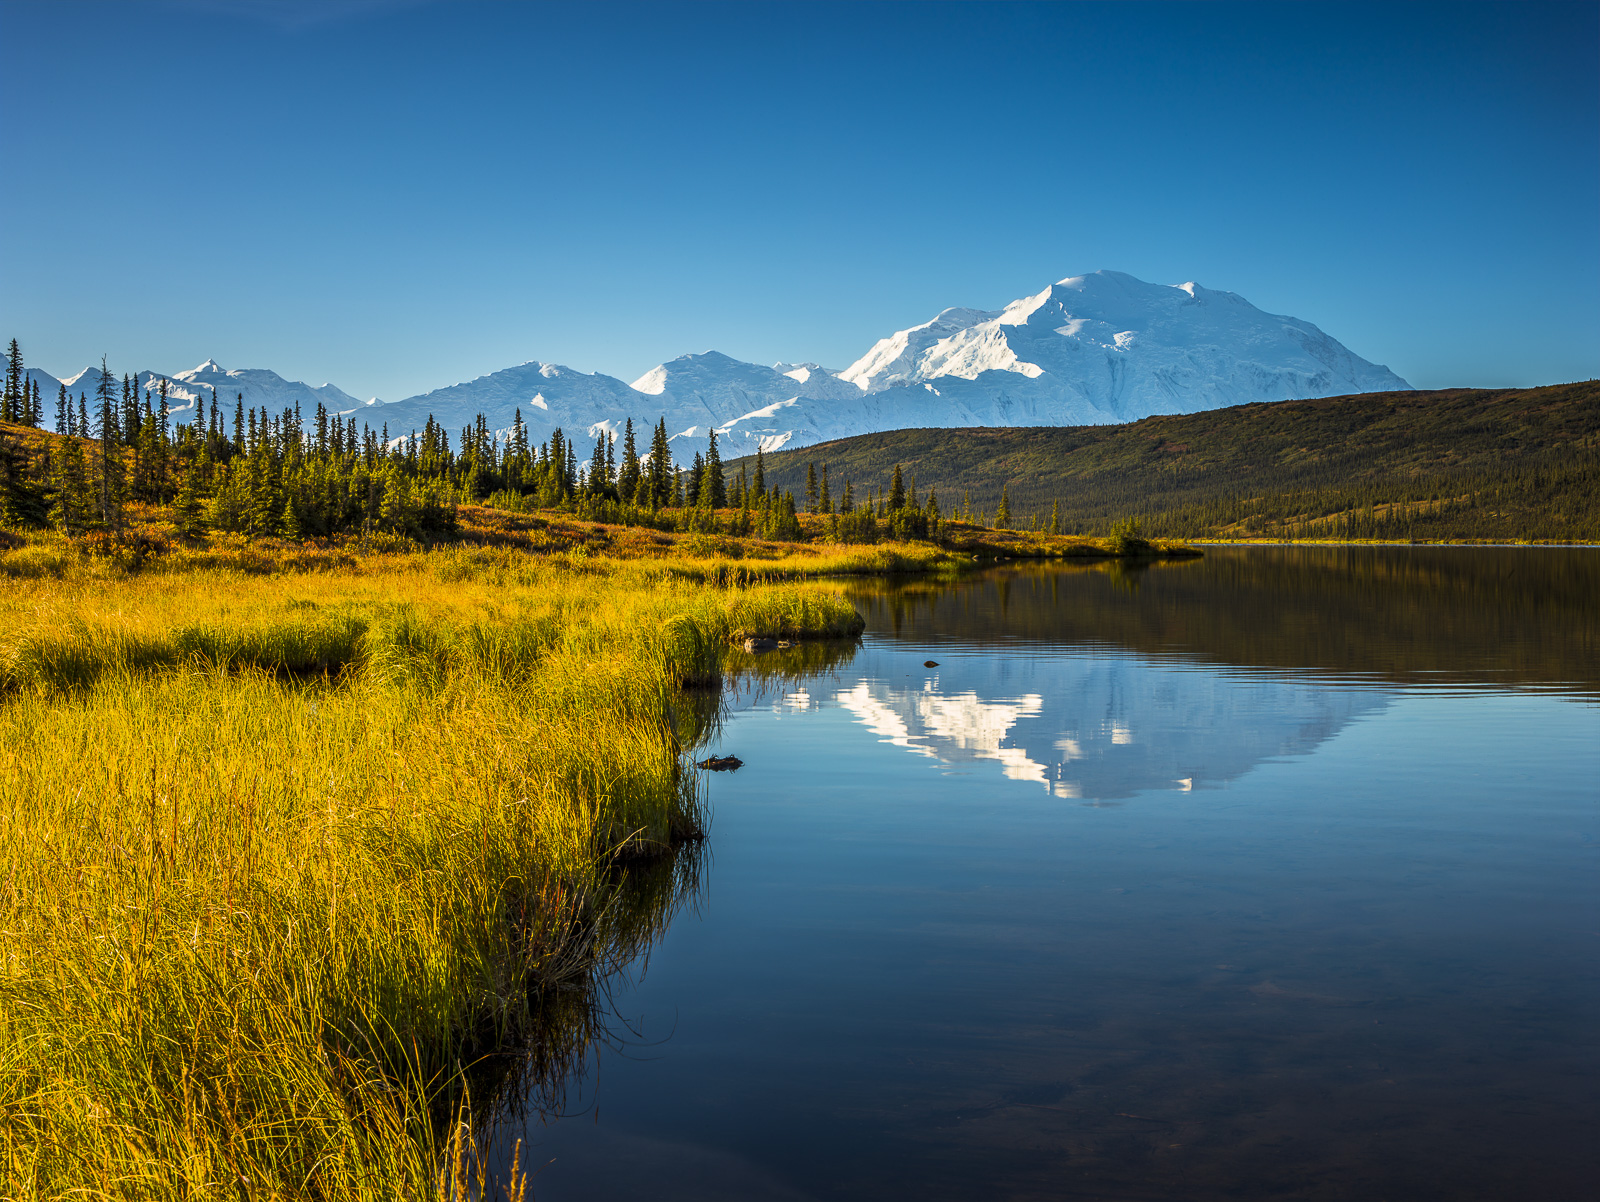 Mount Denali, Mckinley, Alaska, Denali National Park, Autumn, Mountain, Foliage, Landscape, Horizontal, photo